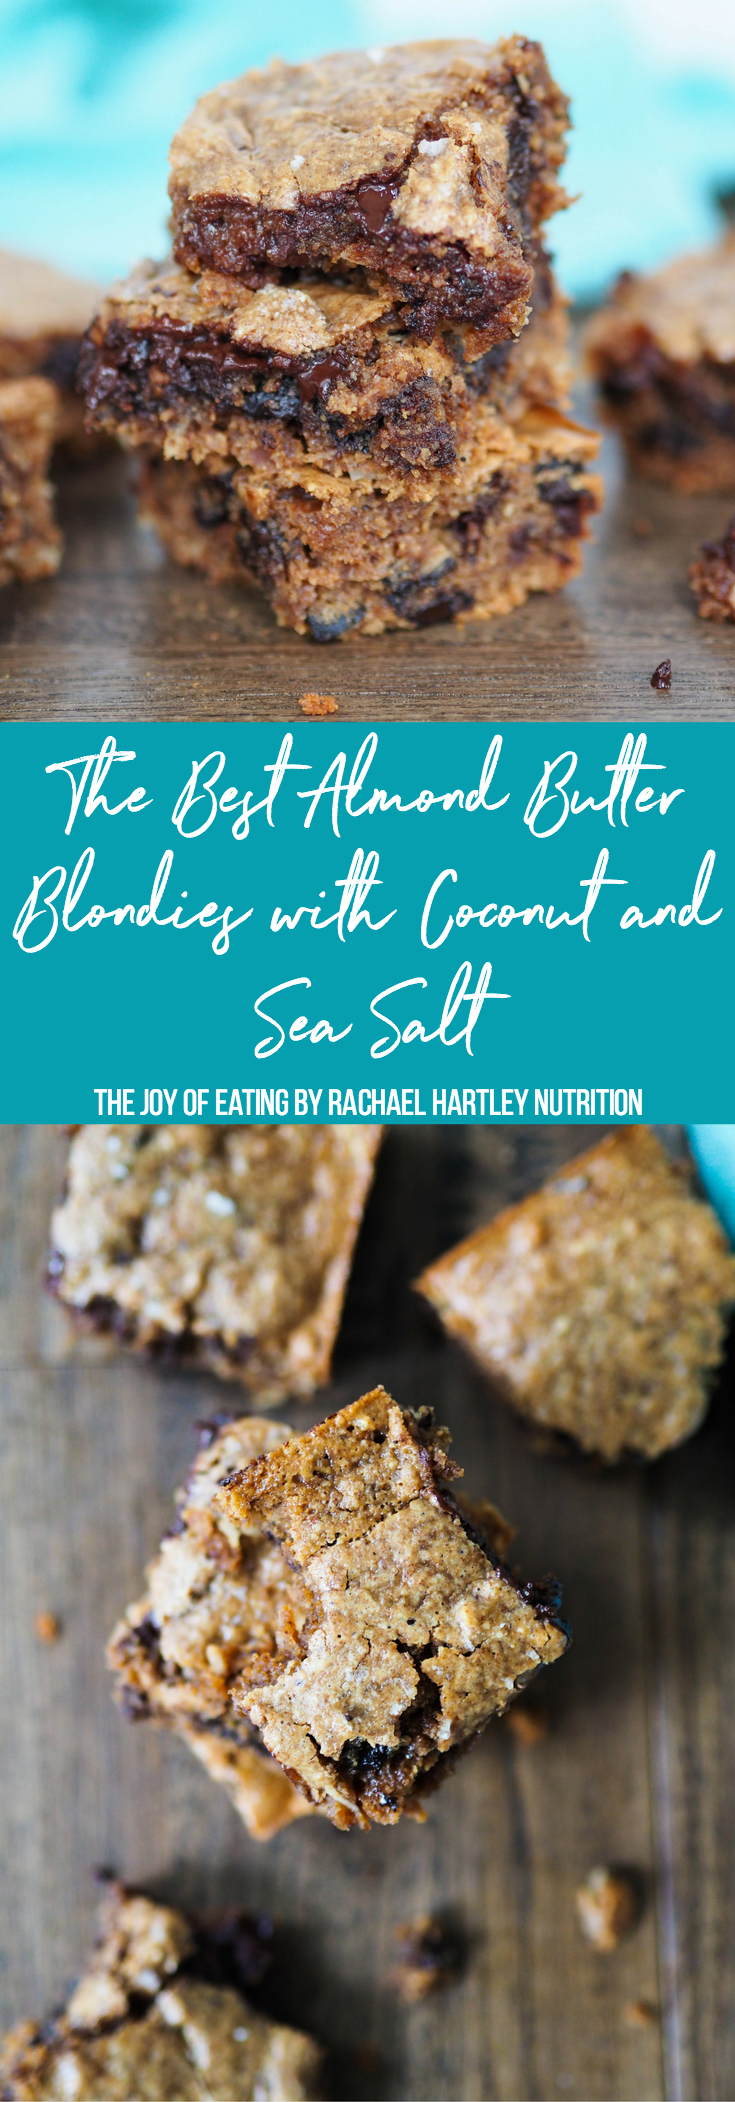 Almond Butter Blondies.png